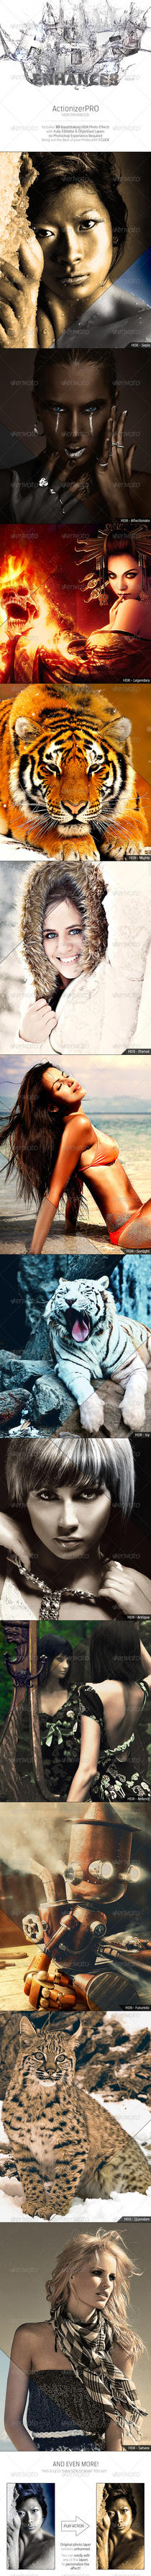 ActionizerPRO - HDR Enhancer Pack 1.0 by Crealextion